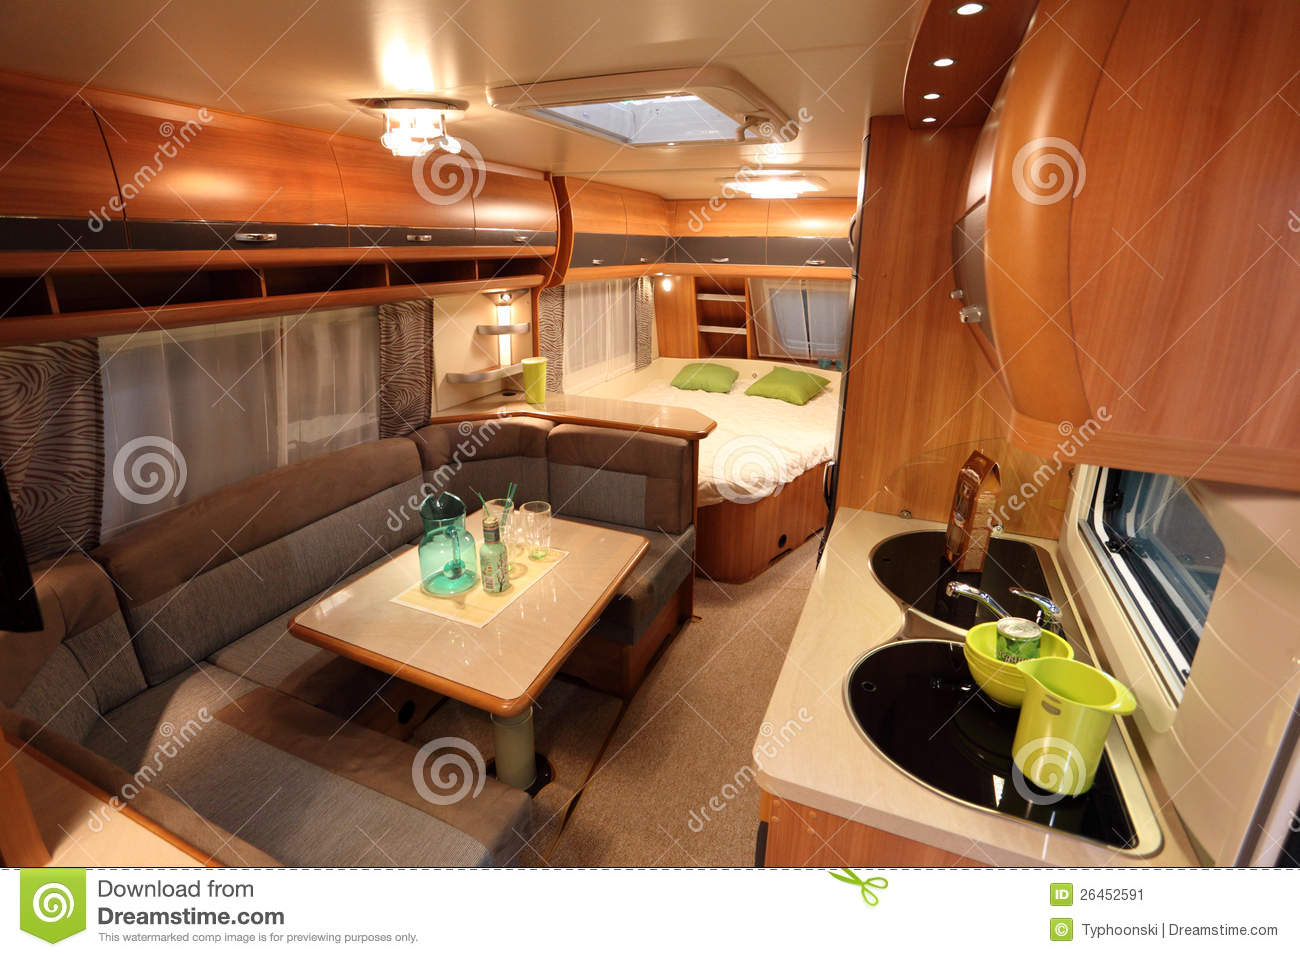 Int rieur d 39 un camping car moderne photo ditorial image for De beukenhof antiek en interieur